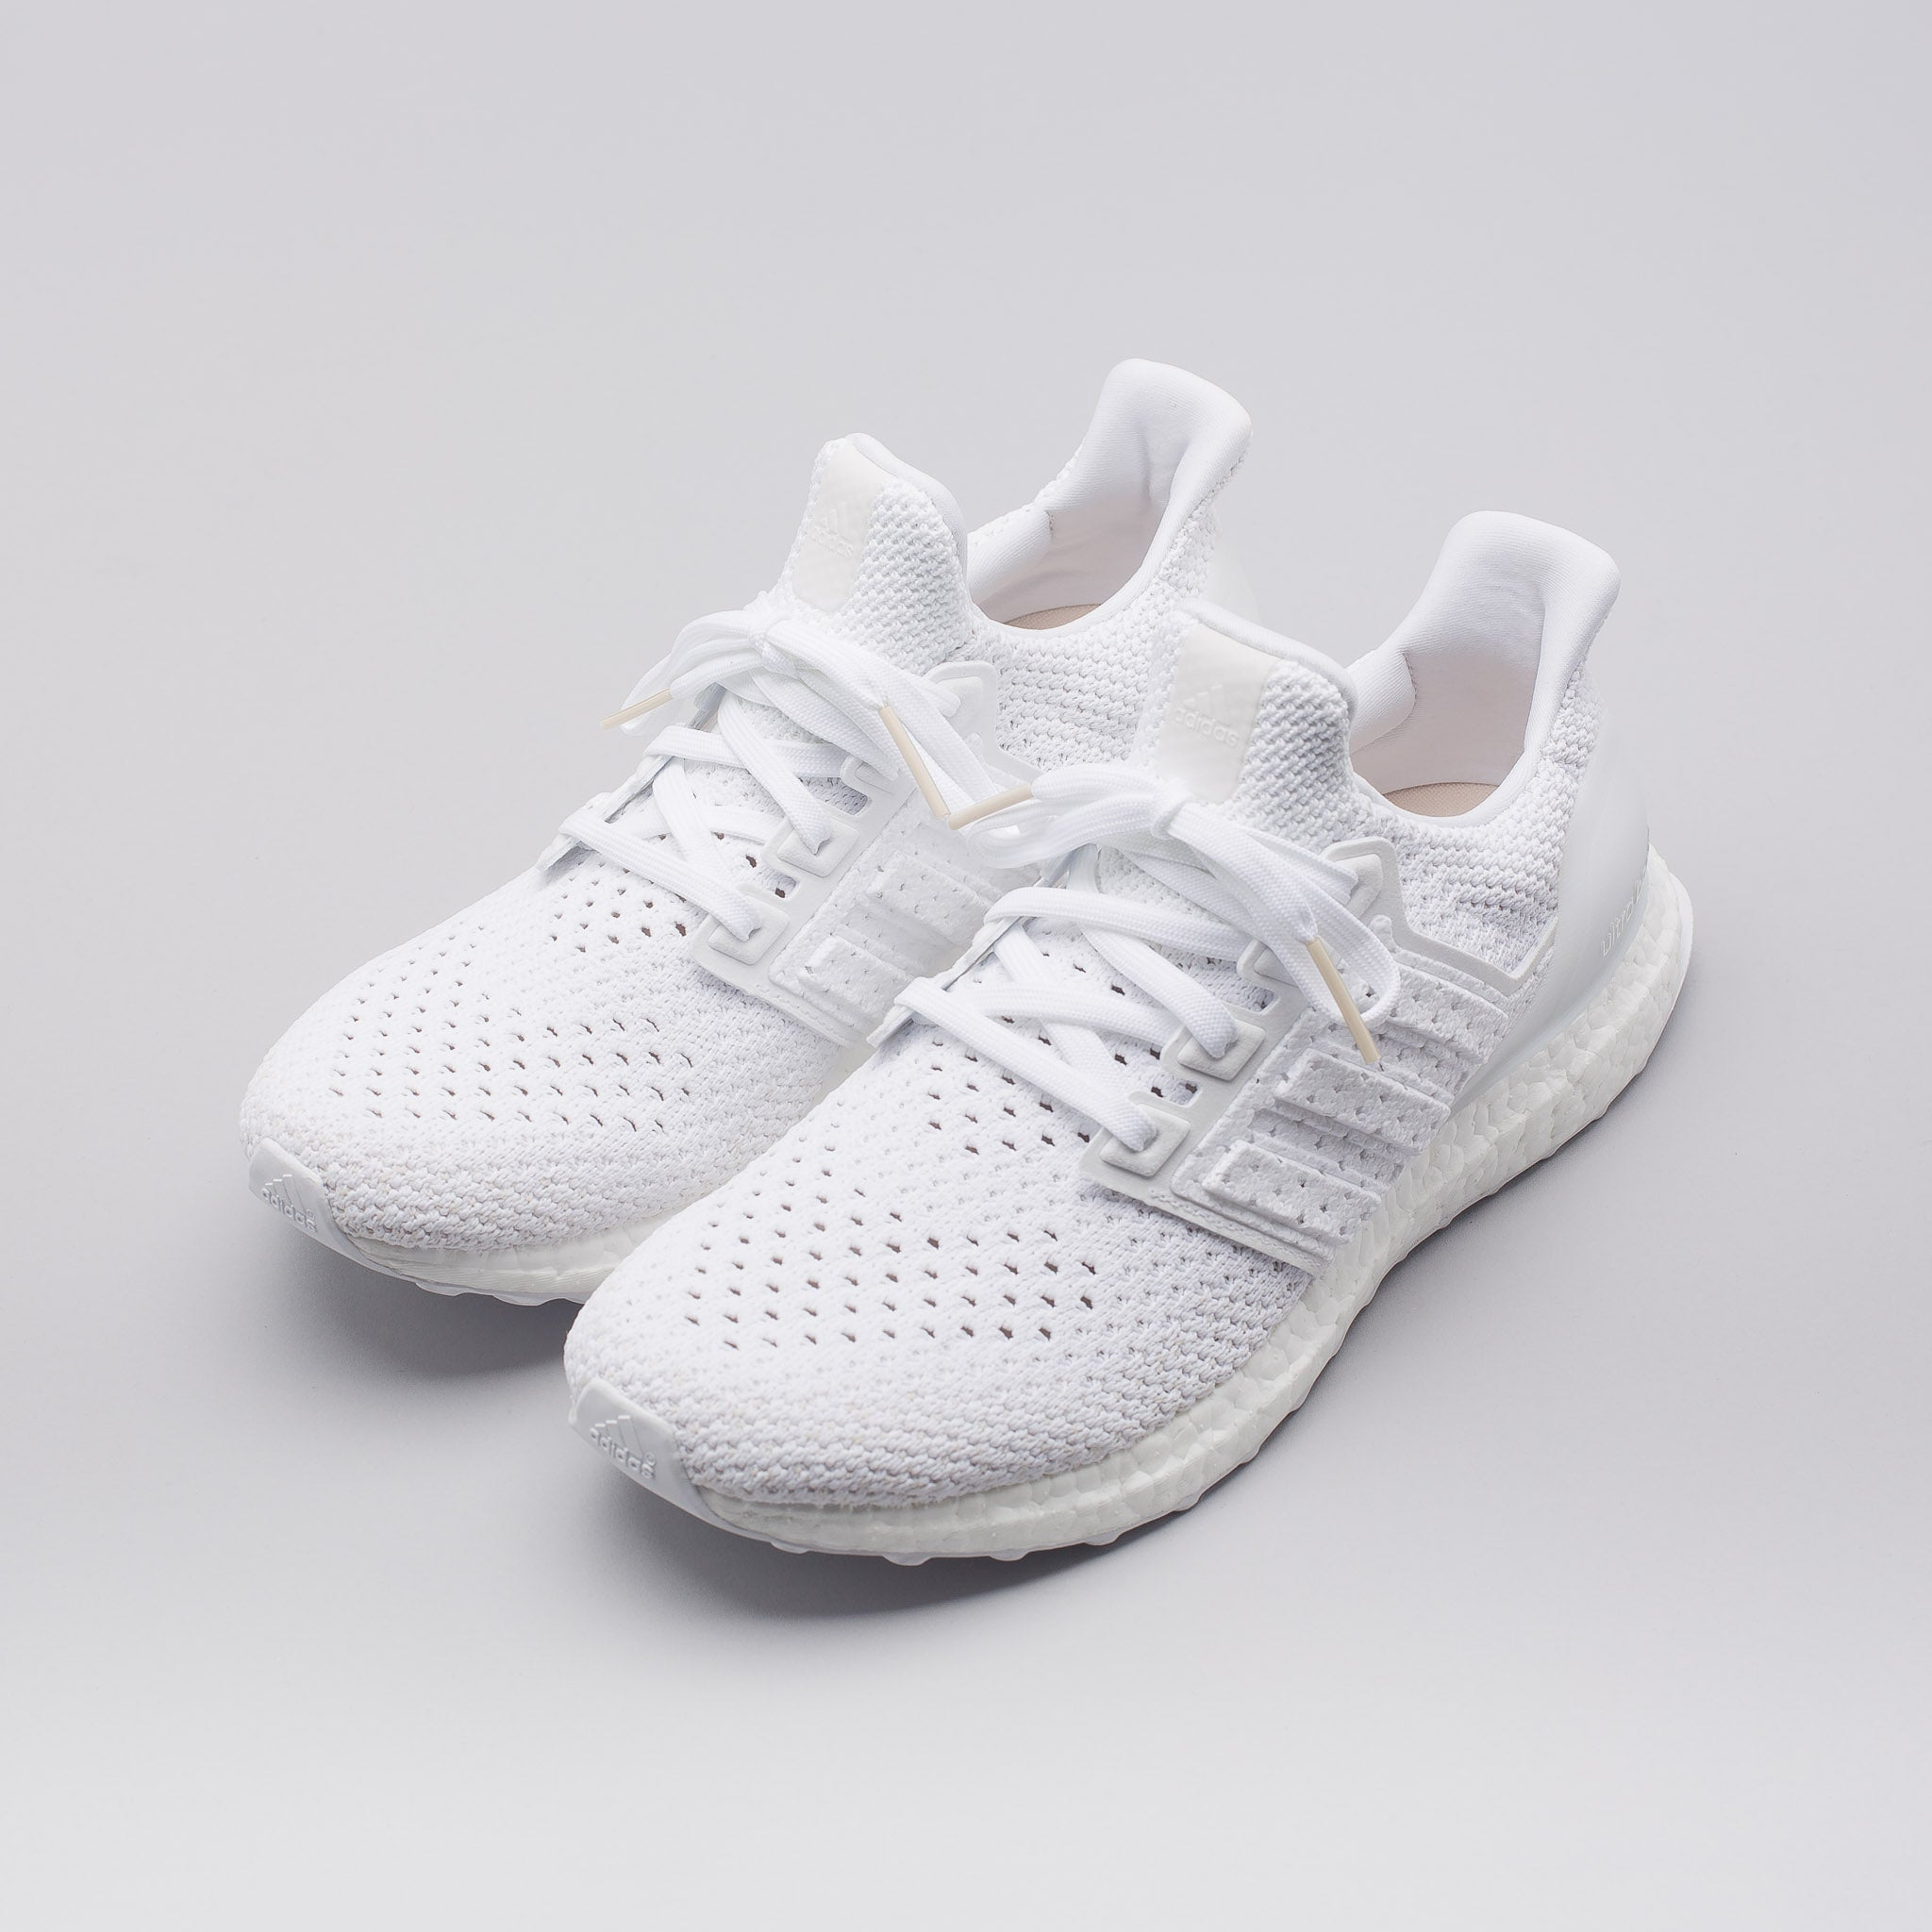 Ultra Boost Clima in White